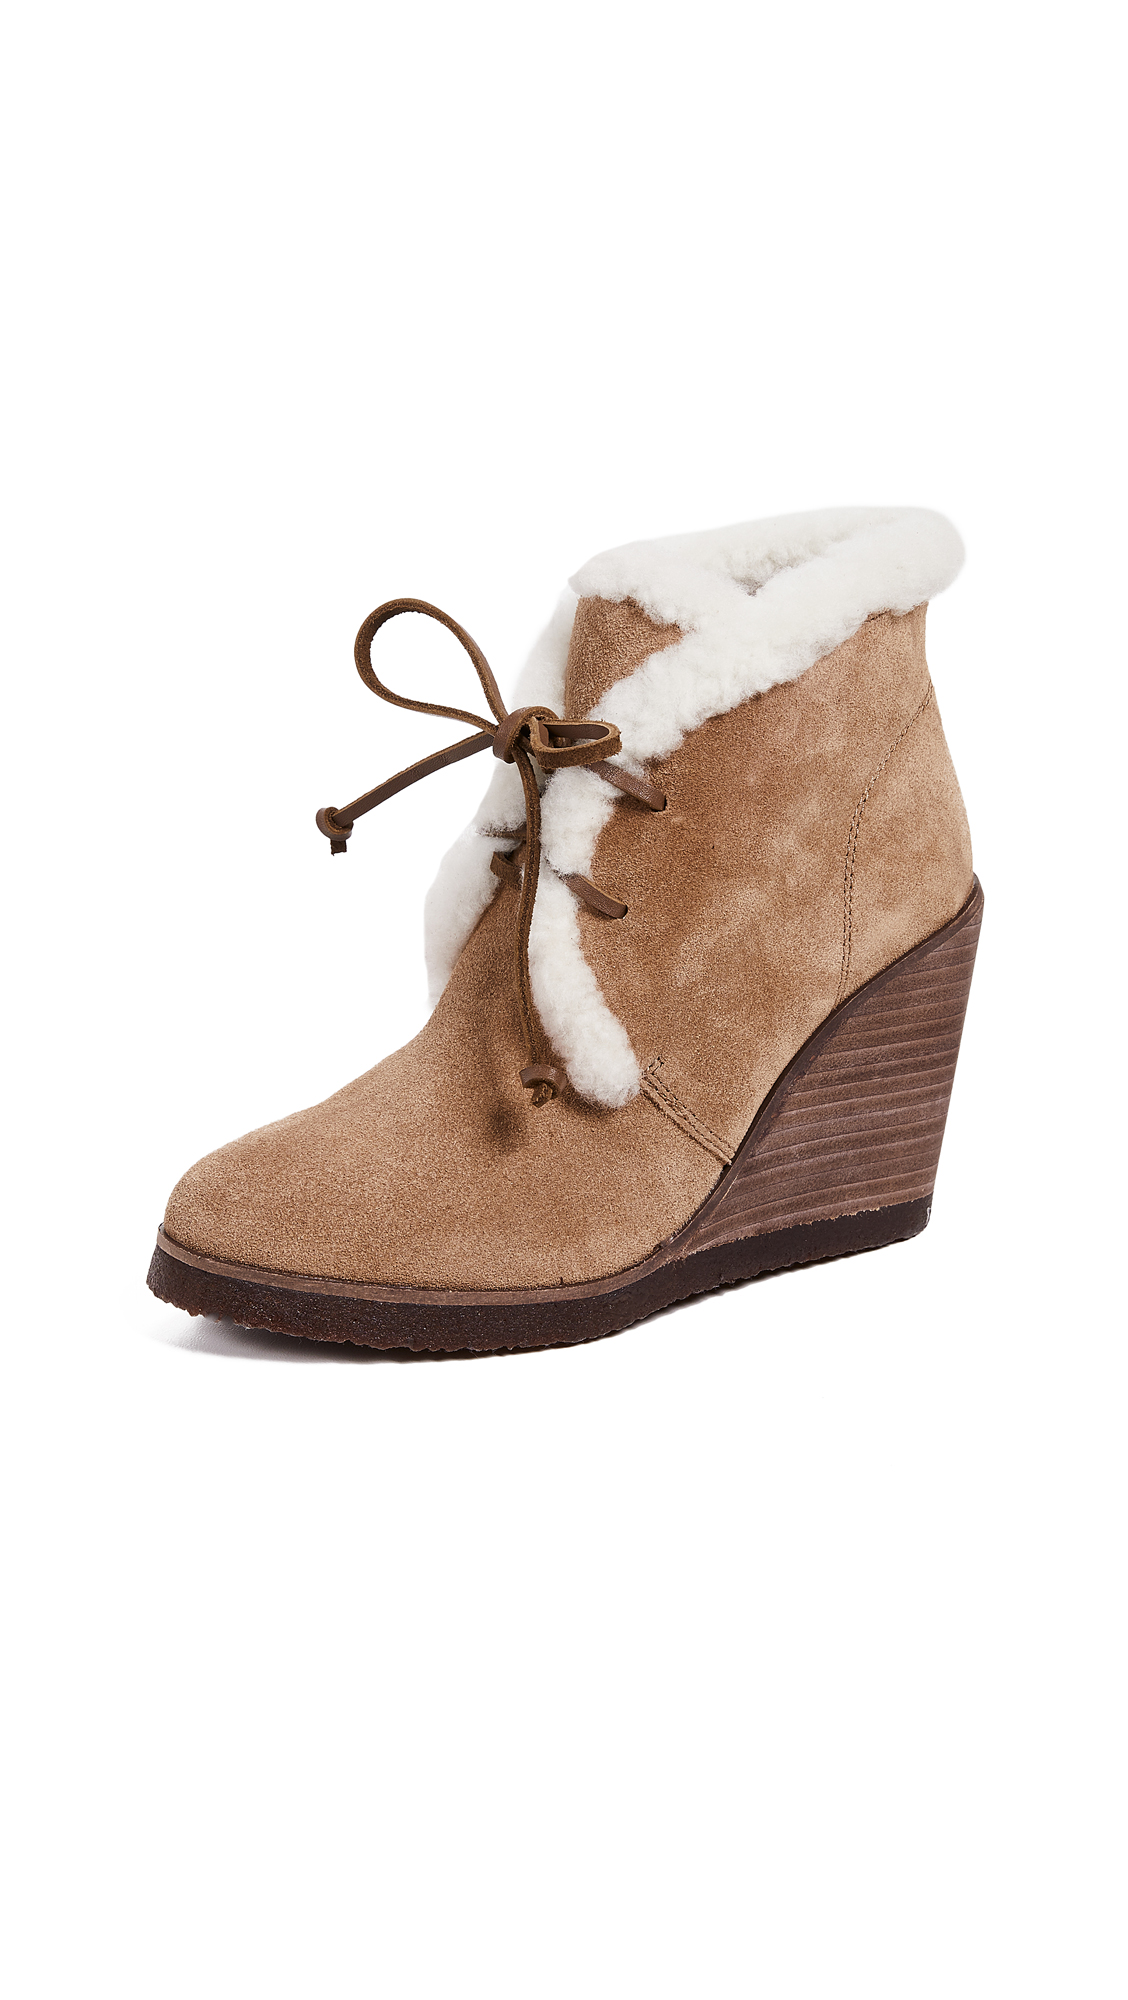 Splendid Catalina Sherpa Booties - Light Brown